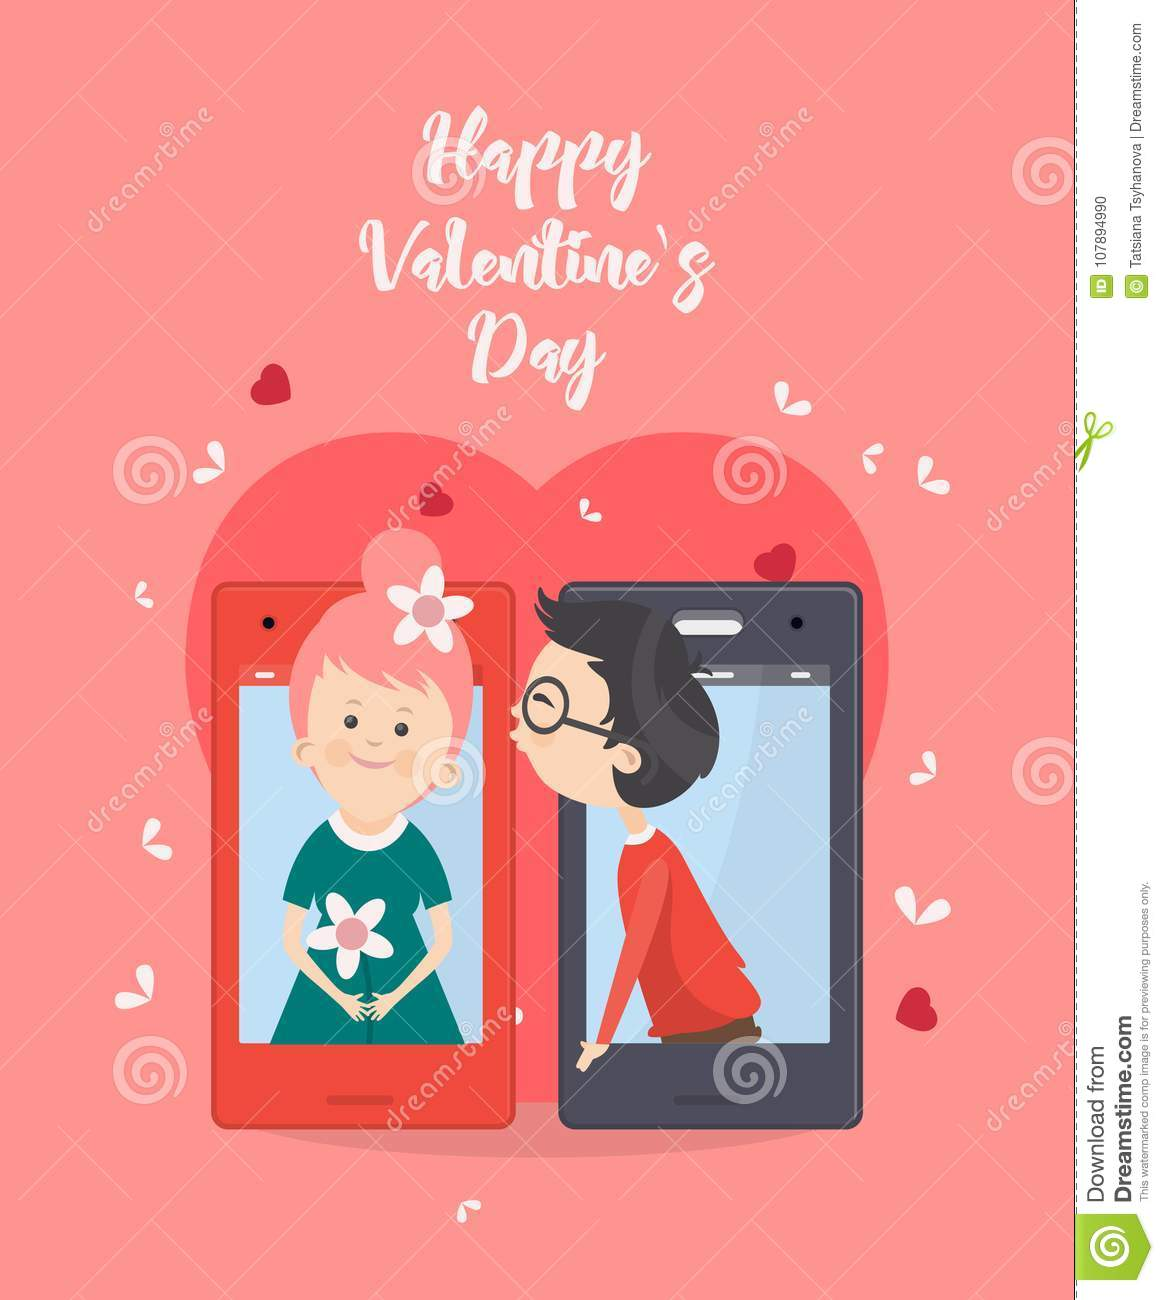 happy valentine day vector illustration with kiss selfie of young